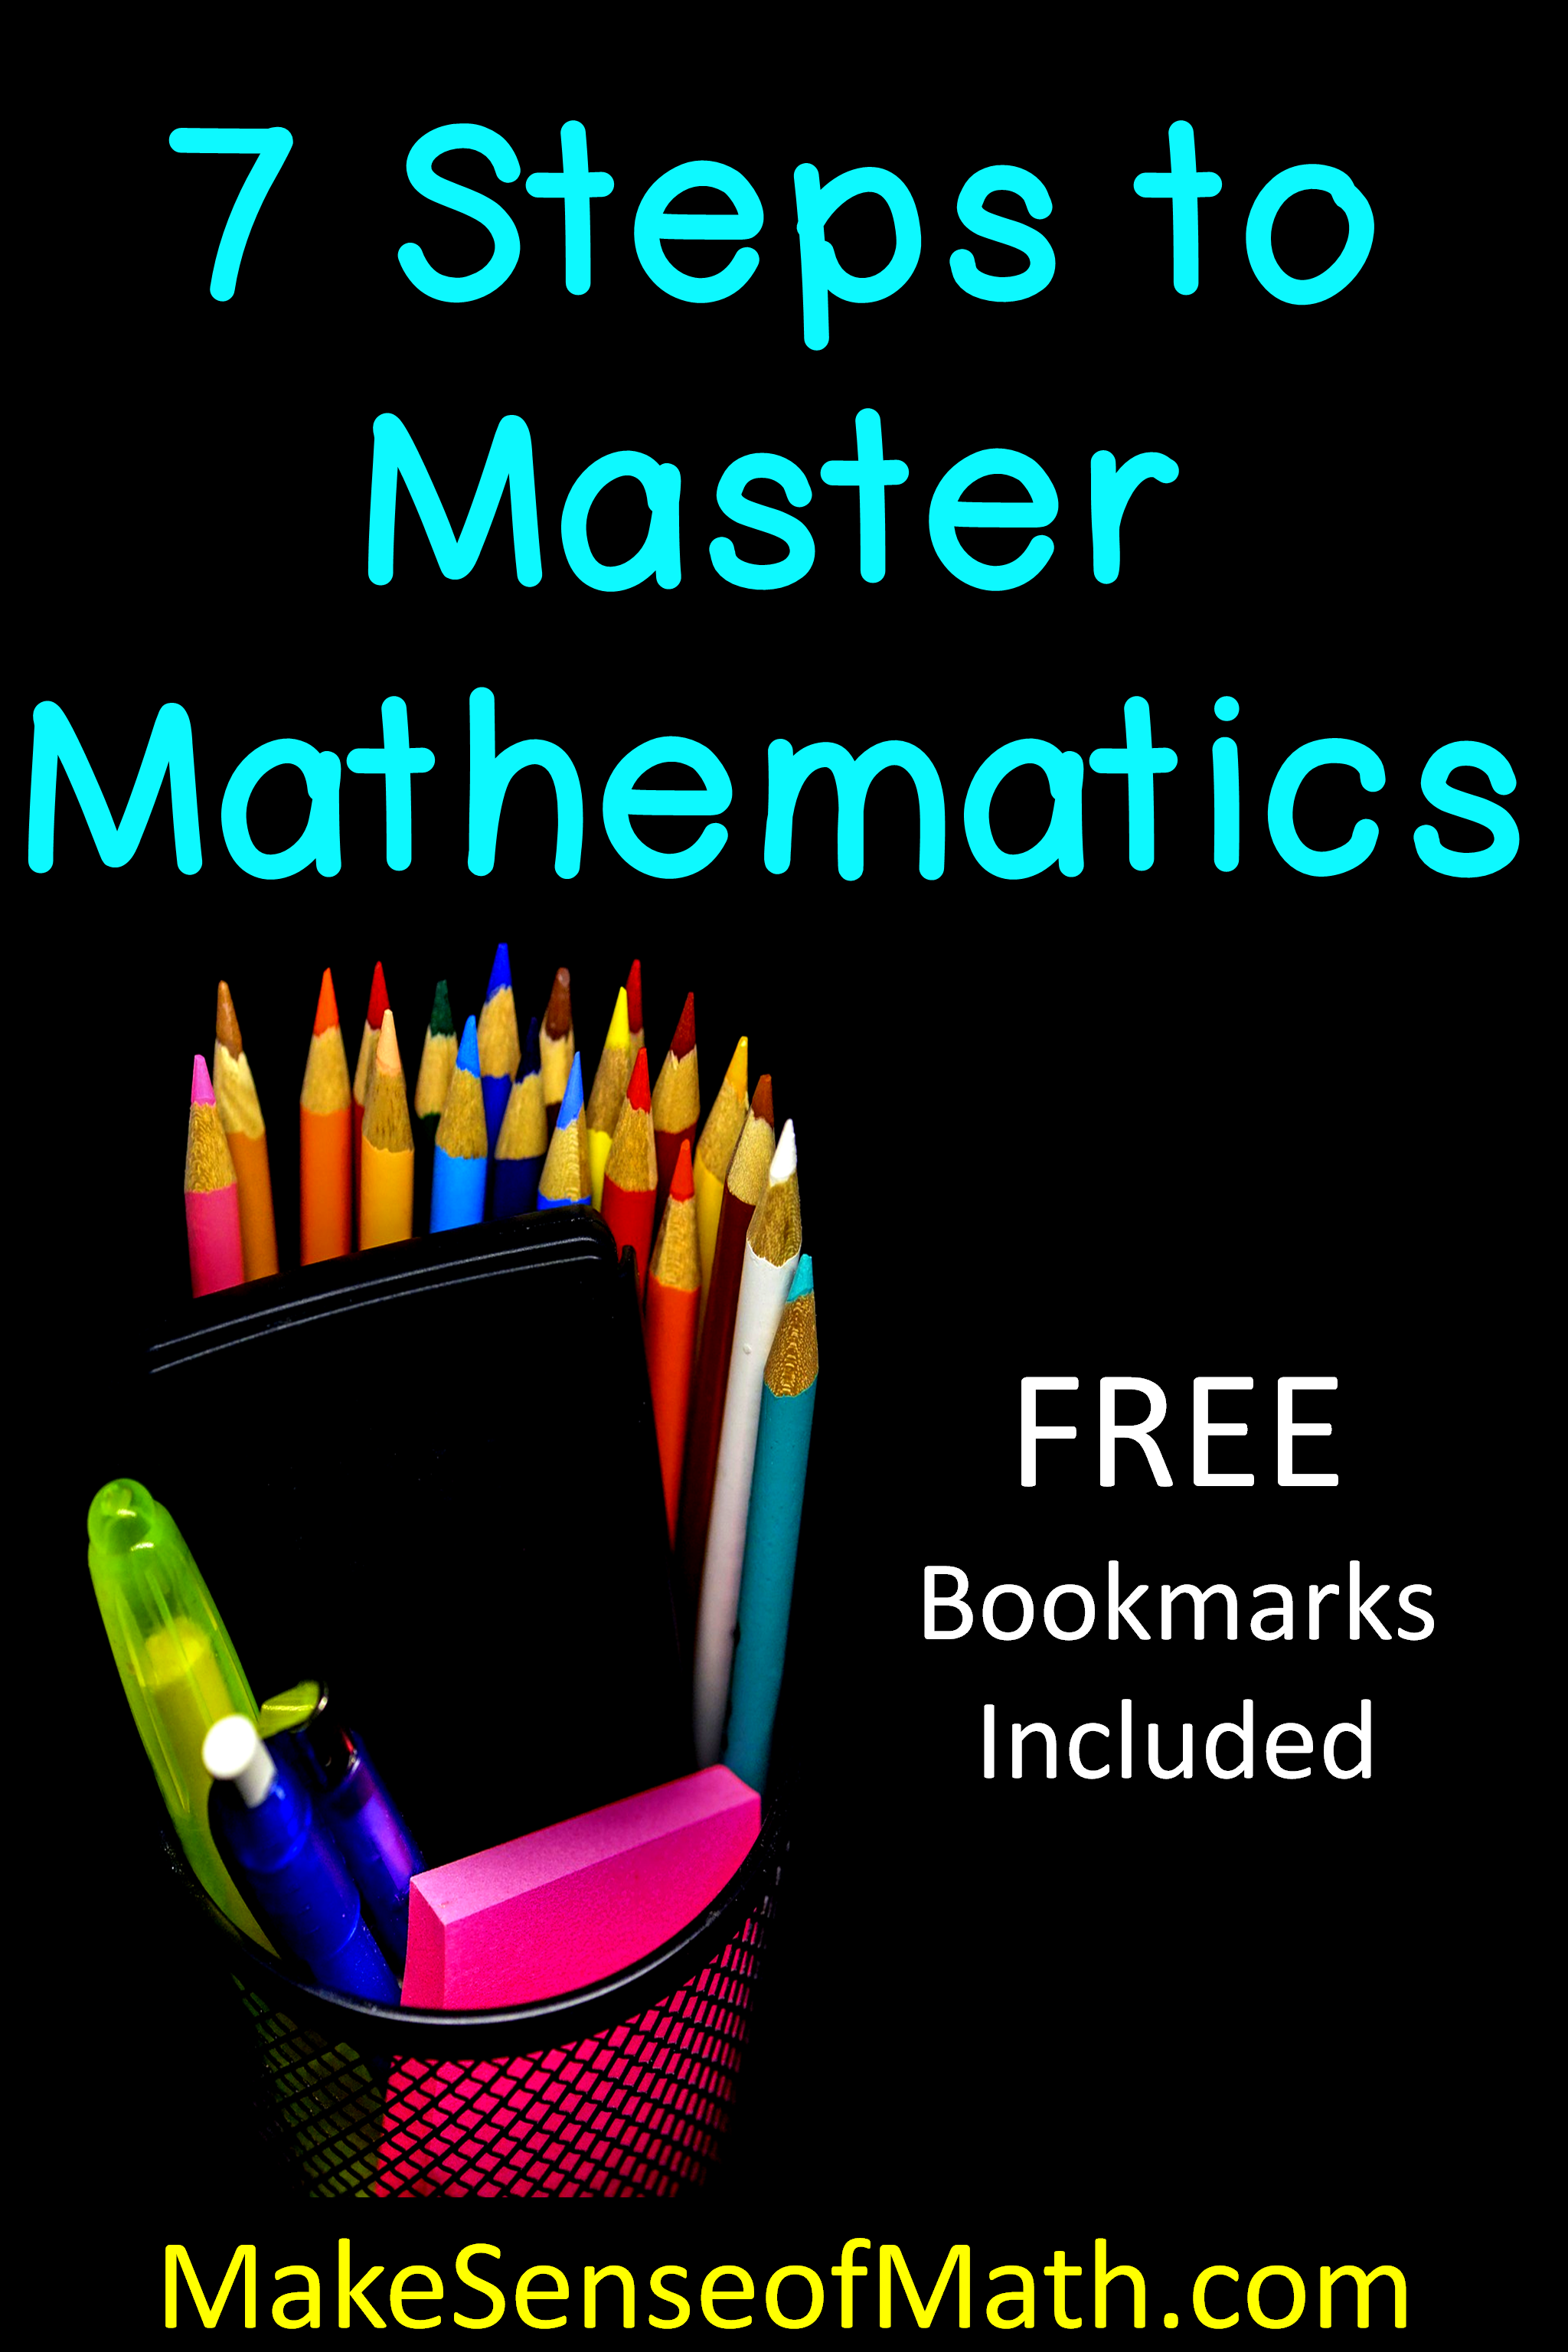 Help Your Students Master Mathematics With These 7 Steps Free